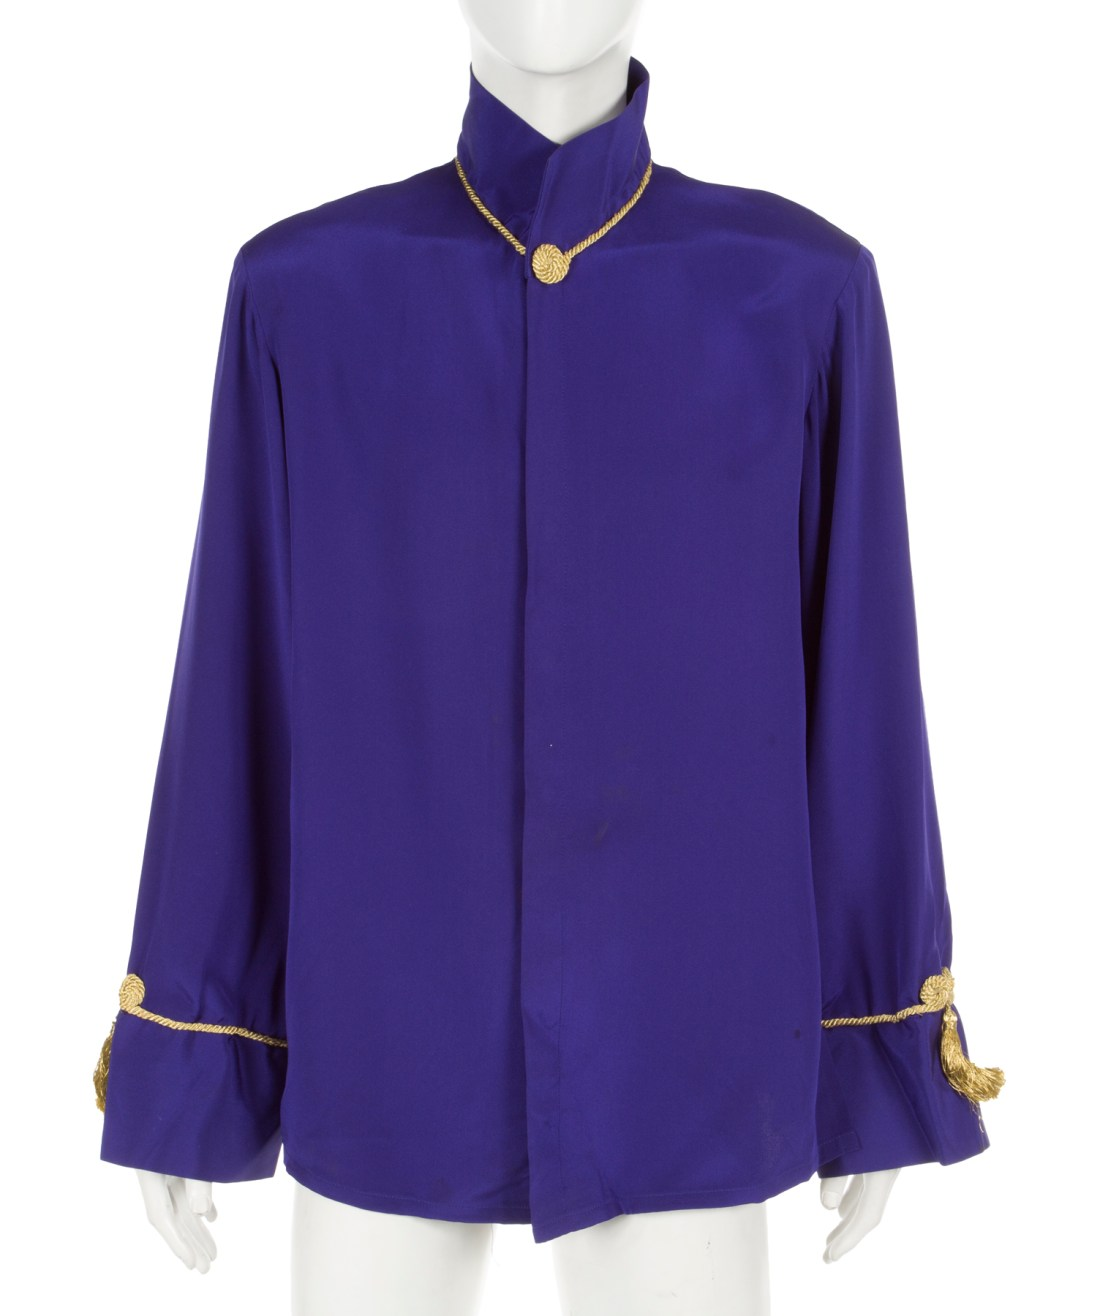 A custom-made purple tunic with gold piping and tassels, worn by Prince during a lengthy interview with Tavis Smiley on the BET channel on October 27, 1998.